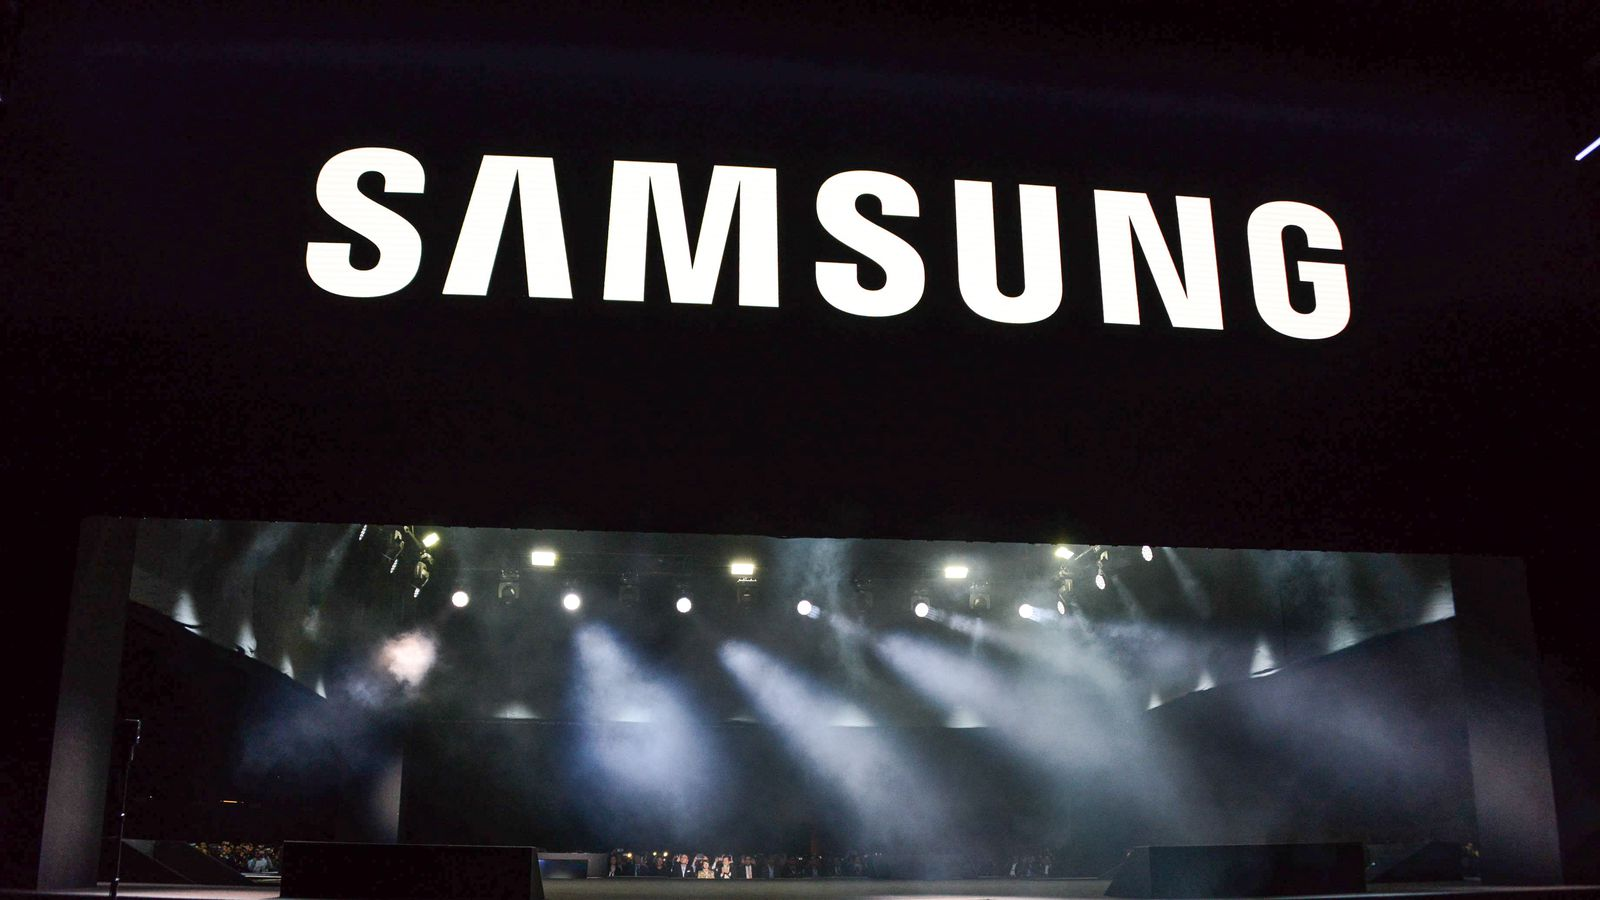 How to watch today's Samsung Galaxy S8 announcement